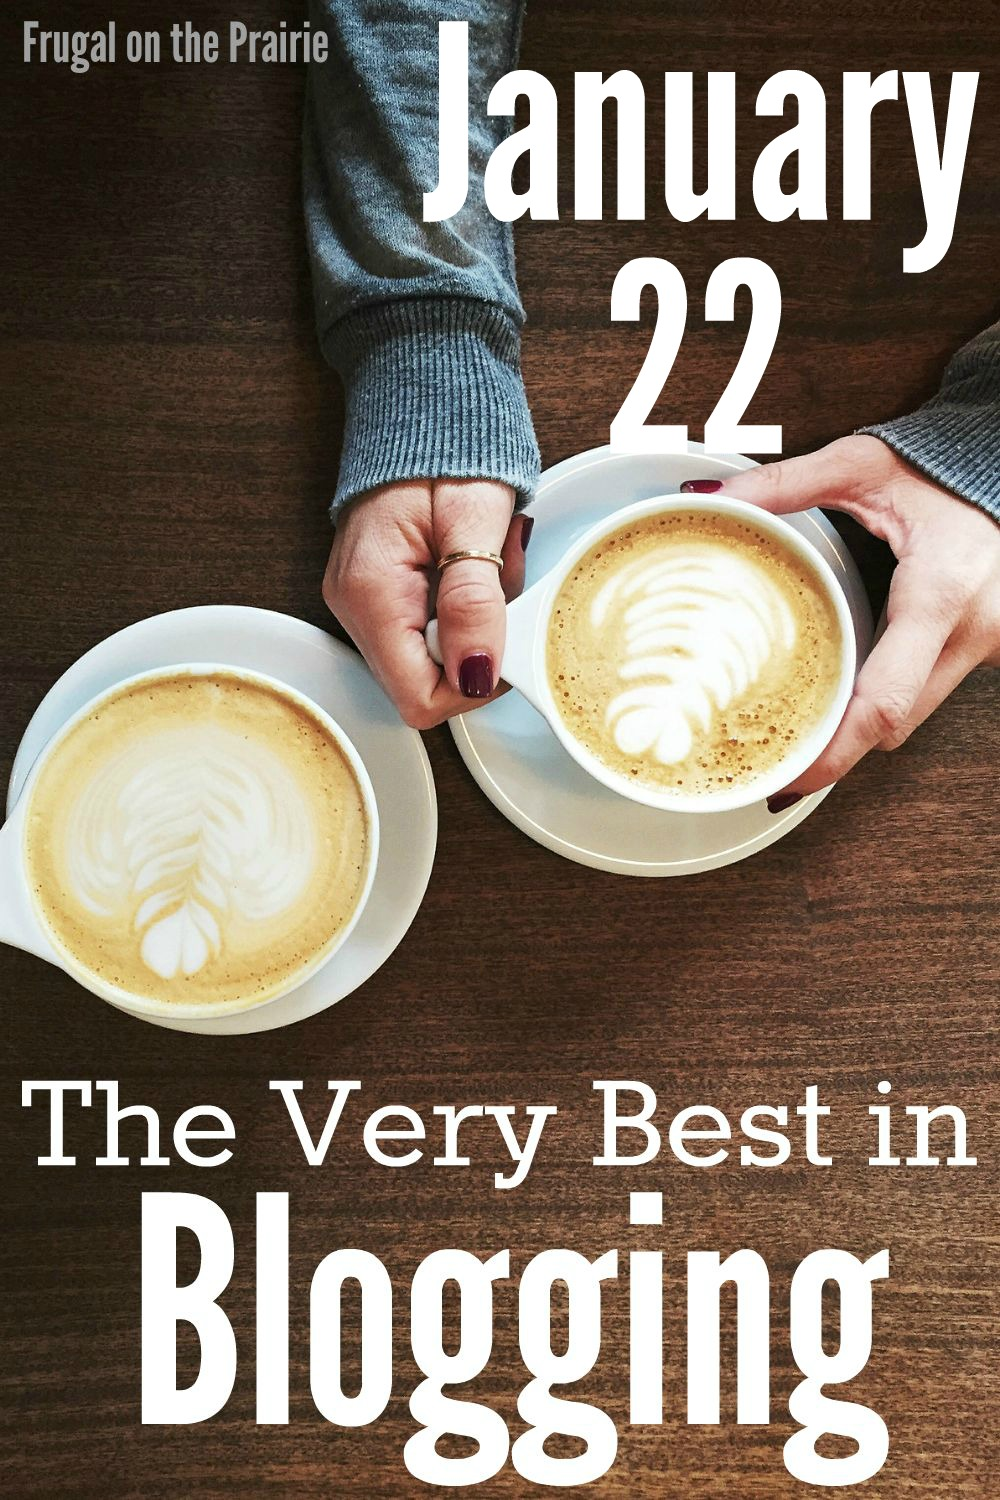 Looking for the very best in blogging posts? I do a roundup of the most inspiring content from around the web every week.